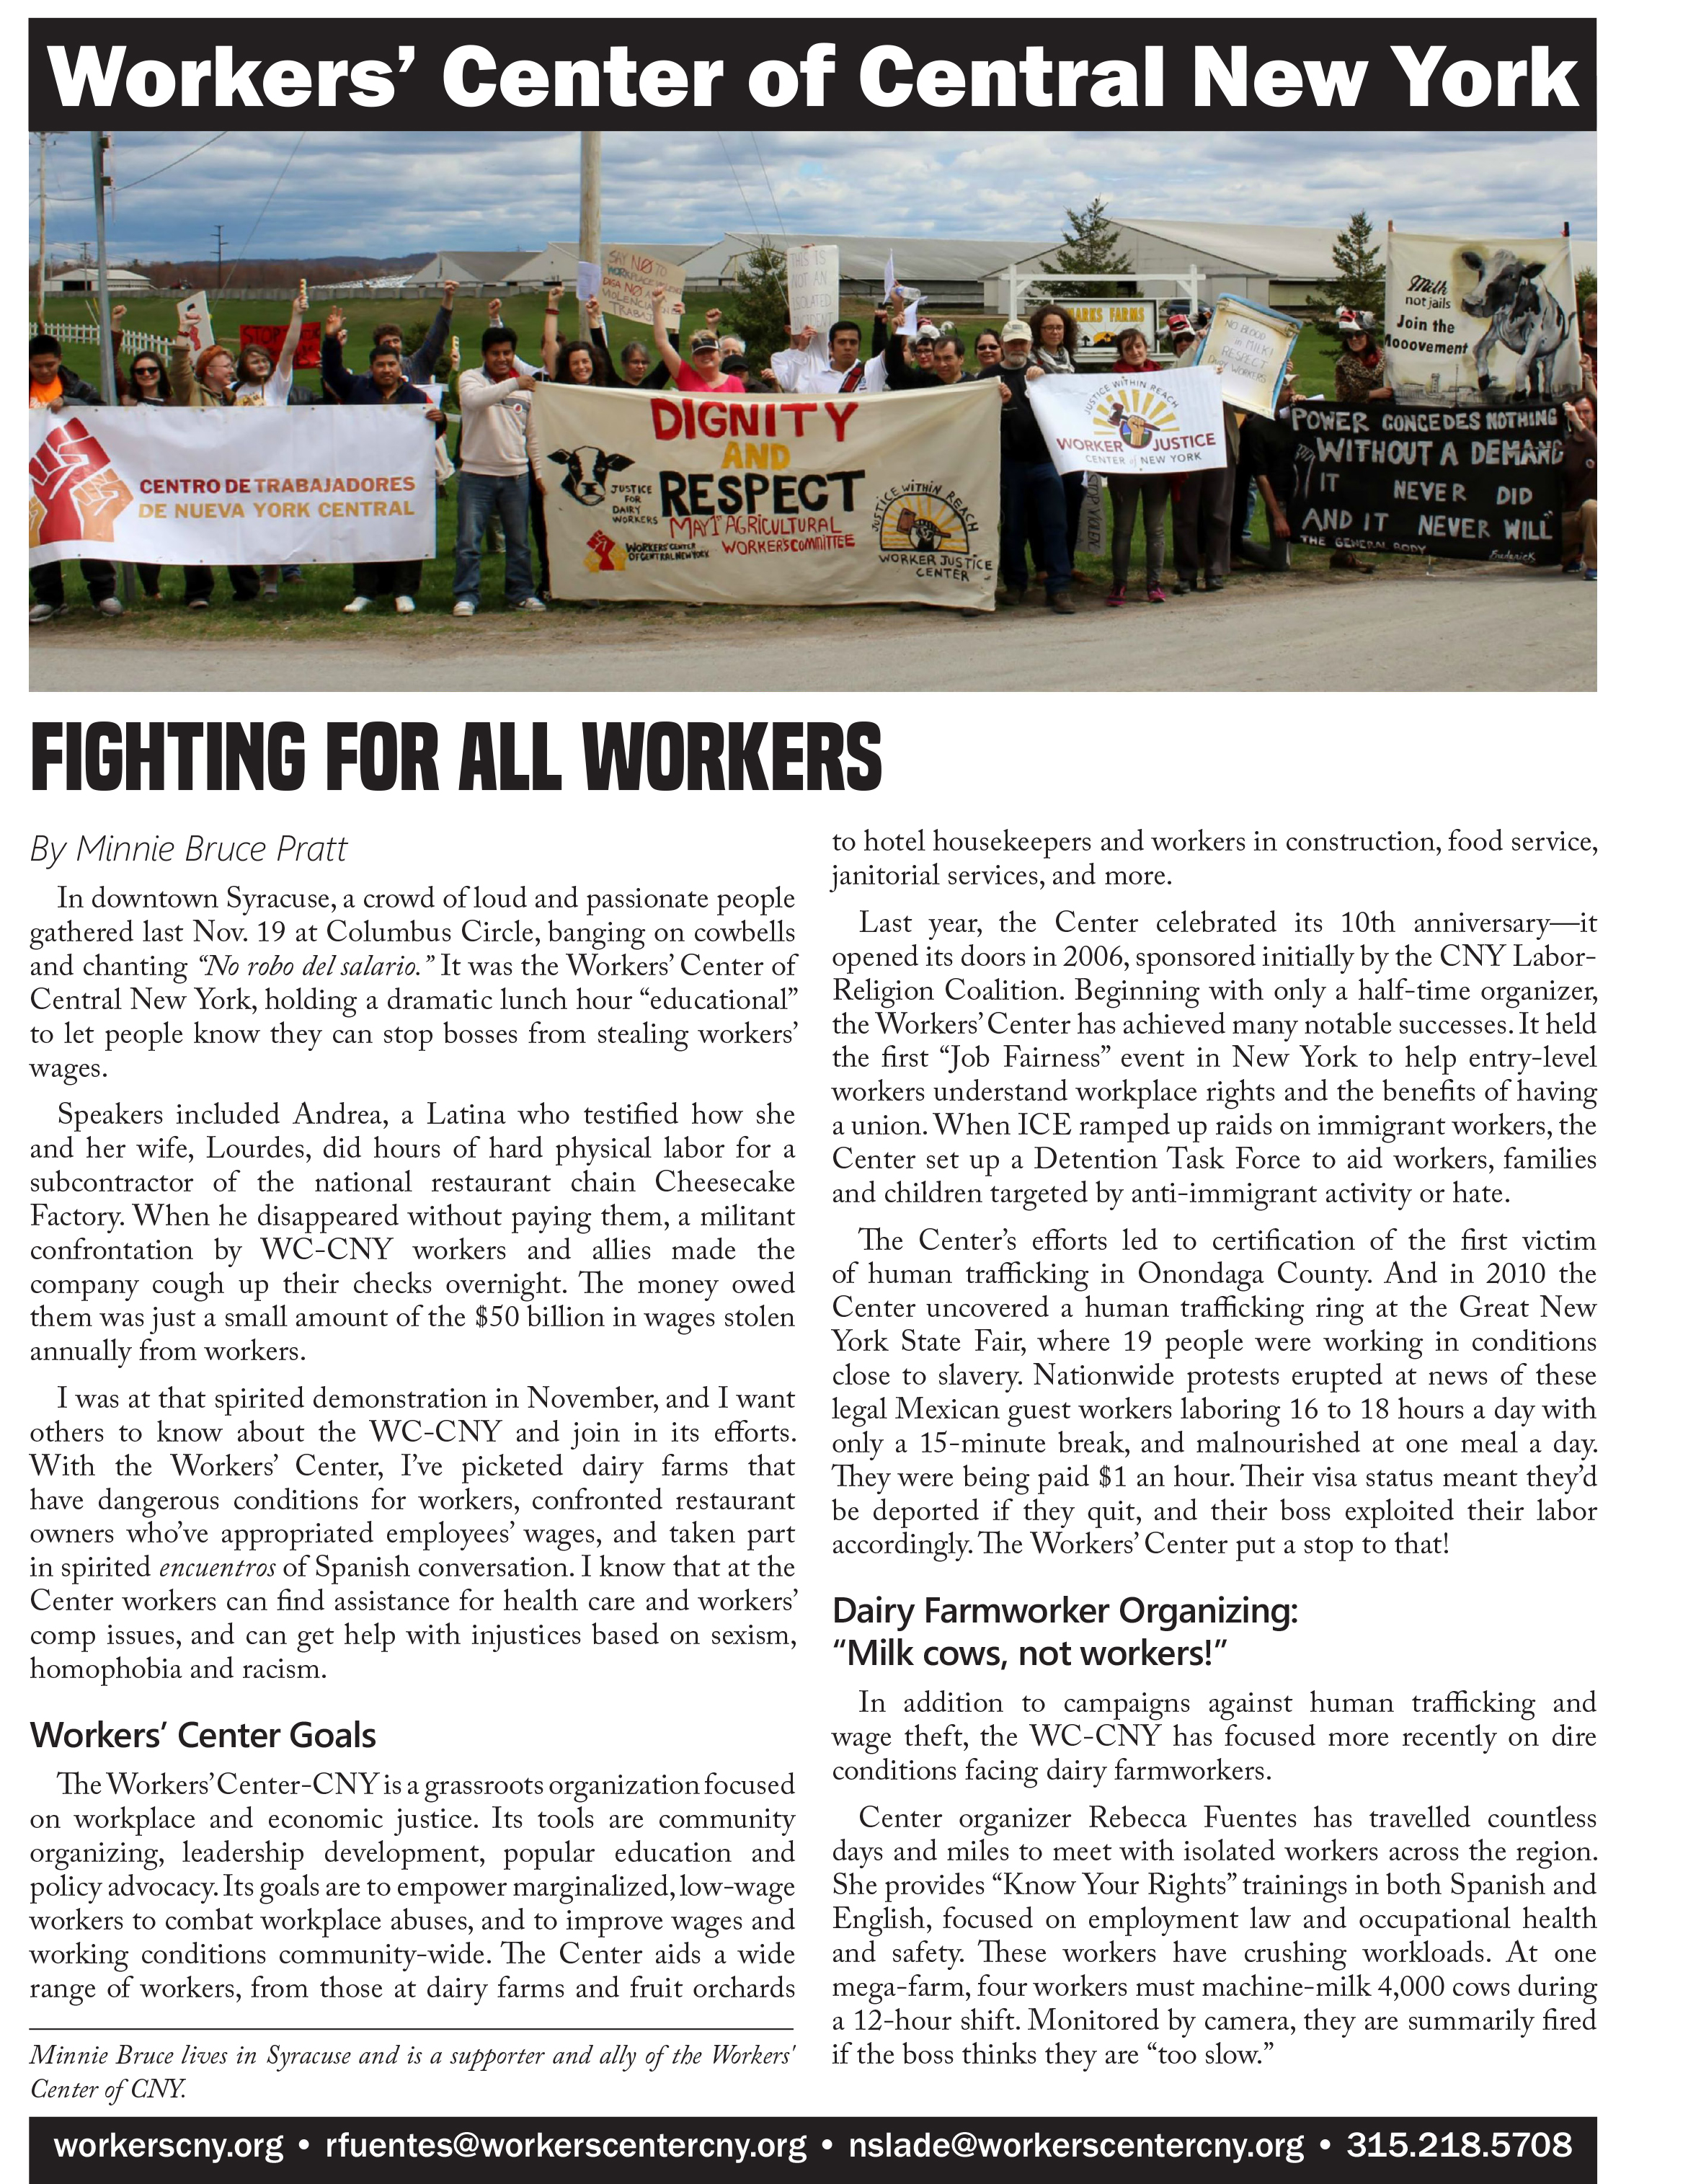 Workers Center Special Section cover image